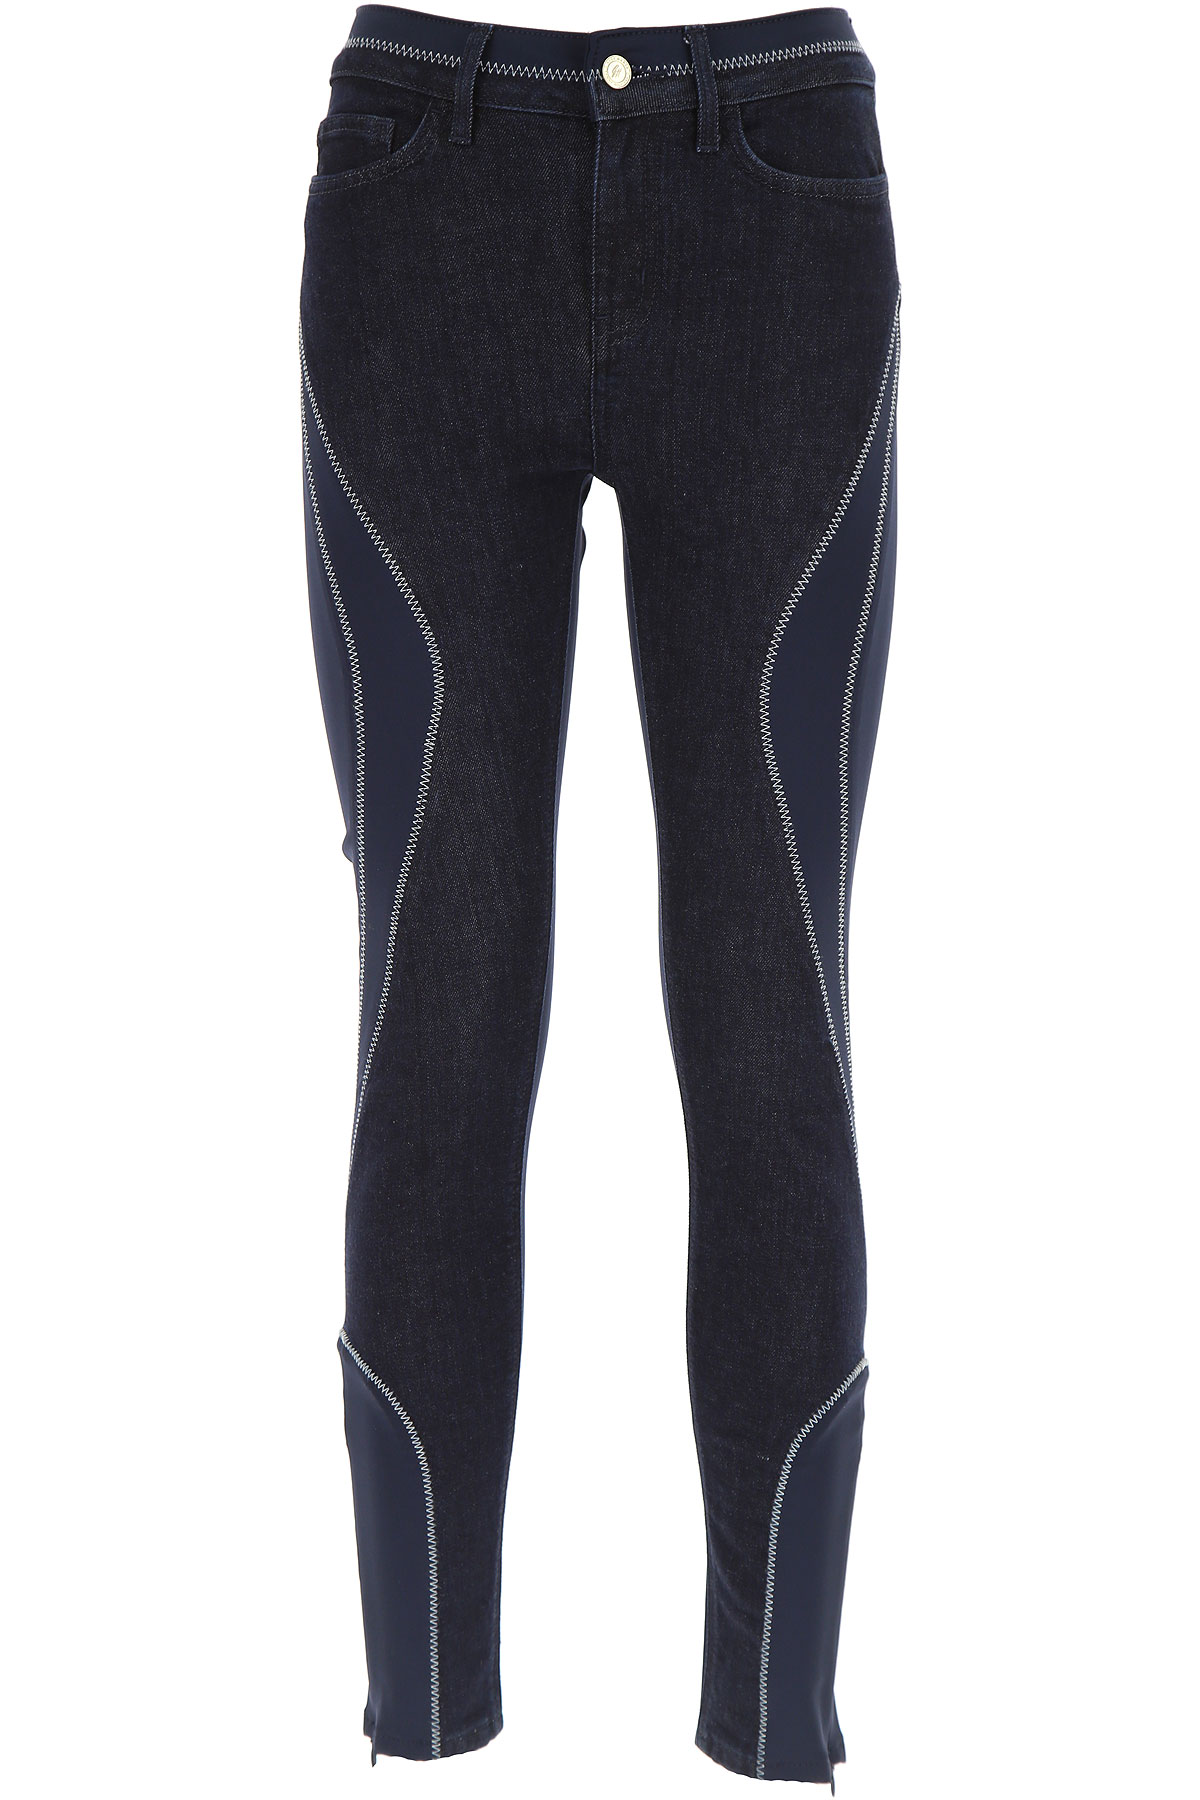 Tommy Hilfiger Jeans On Sale, A Special Collection By Gigi Hadid, Navy Blue, Cotton, 2017, 26 29 30 USA-446853